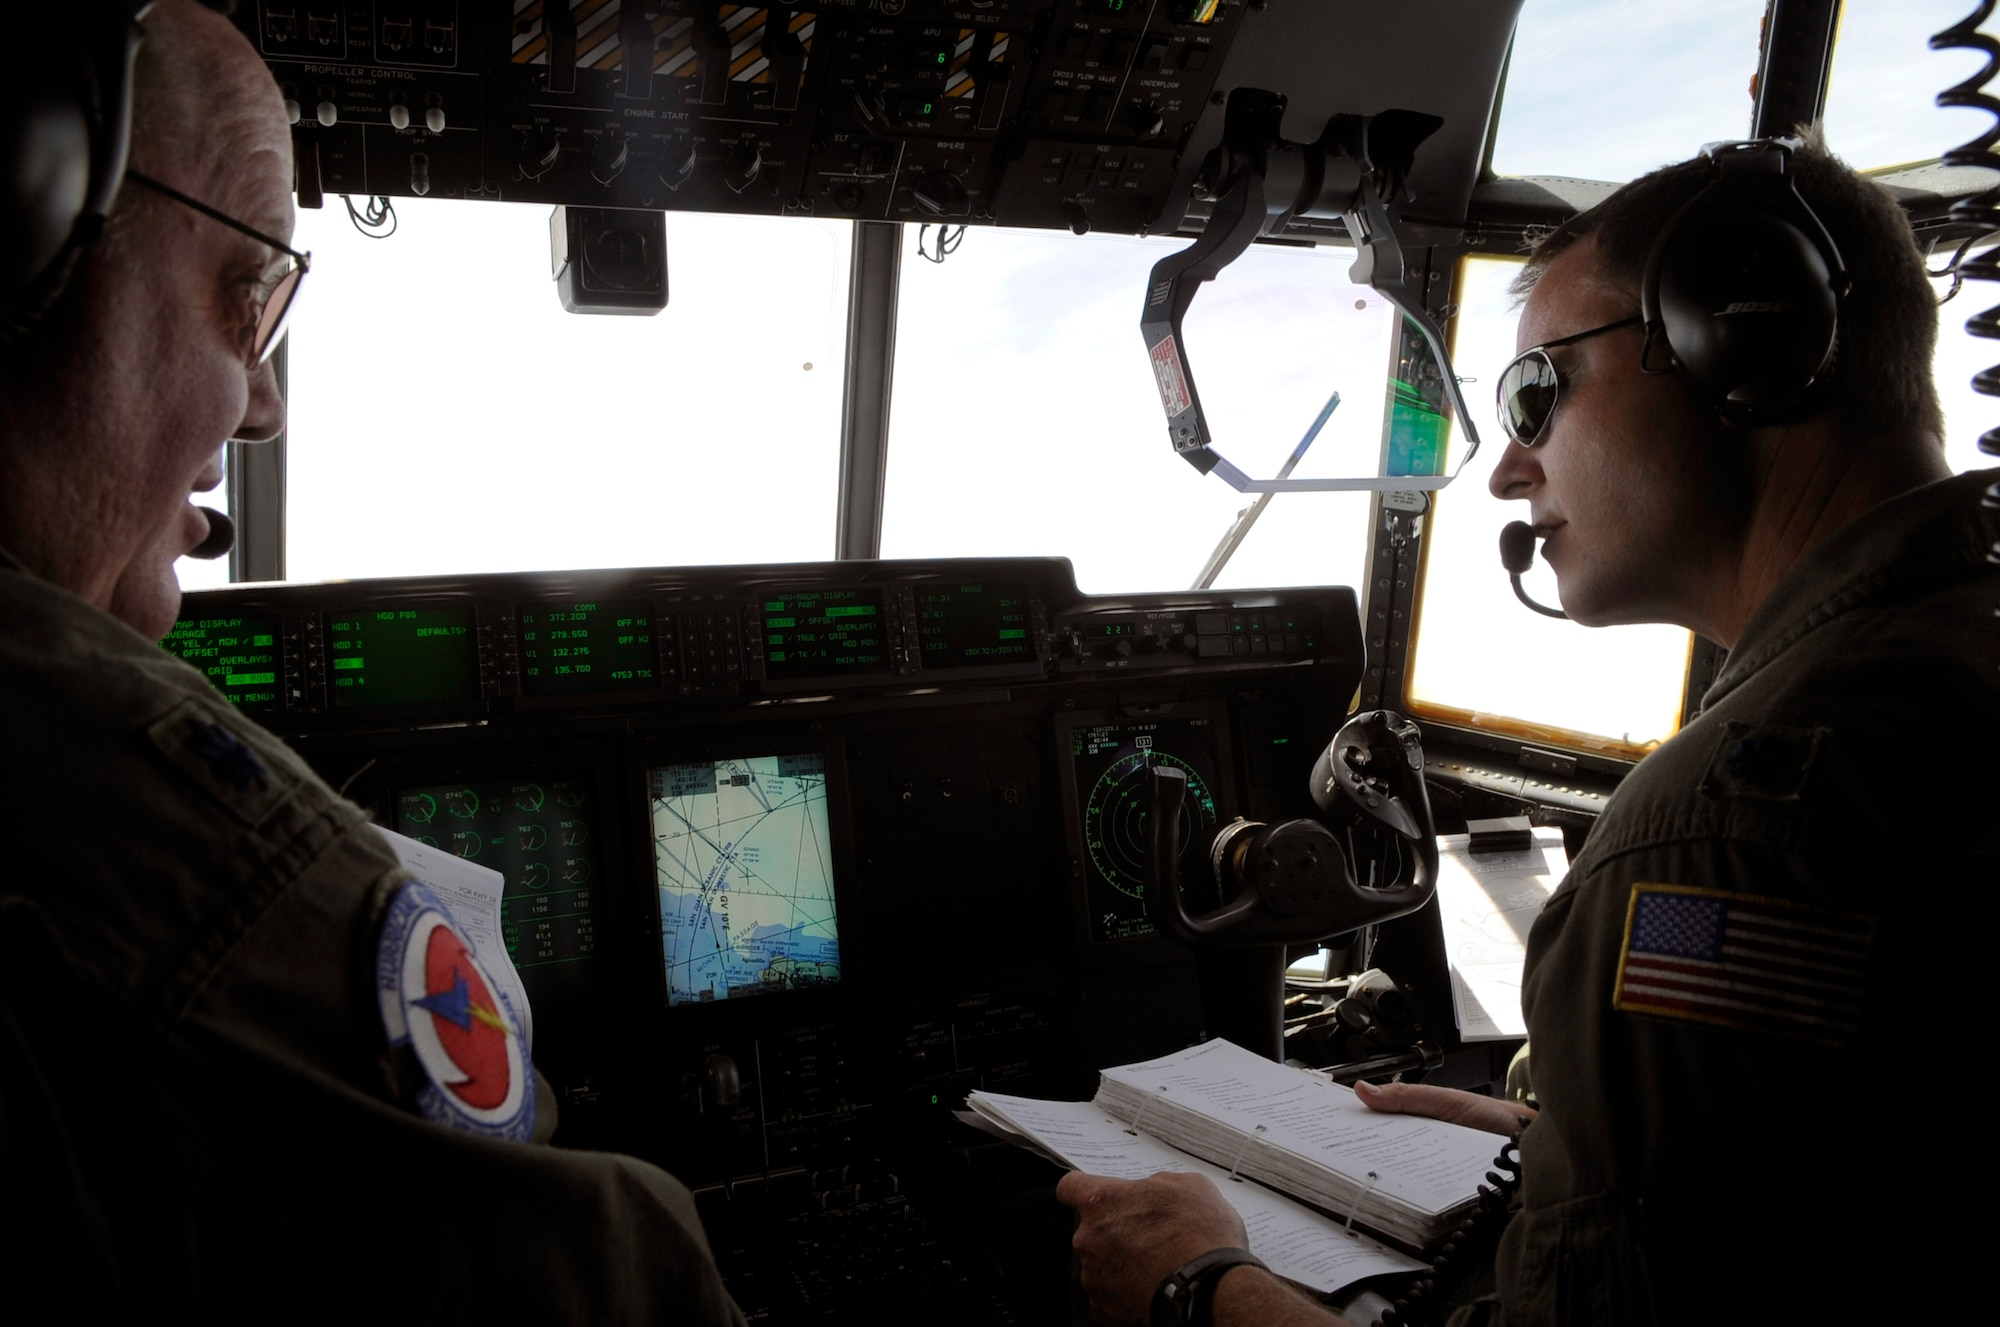 Lt. Col. Roger Gardner and Lt. Col. Louis Patriquin review a checklist during a training mission on a WC-130J Hercules to St. Croix, V.I. from Keesler Air Force Base, Miss. Colonel Gardner is the aircraft commander and Colonel Patriquin is the 403rd Operations Group commander. The mission covered the Air Force Reserve Command's weather mission as they enter Hurricane Season, which began June 1. (U.S. Air Force photo/Staff Sgt. Desiree N. Palacios)